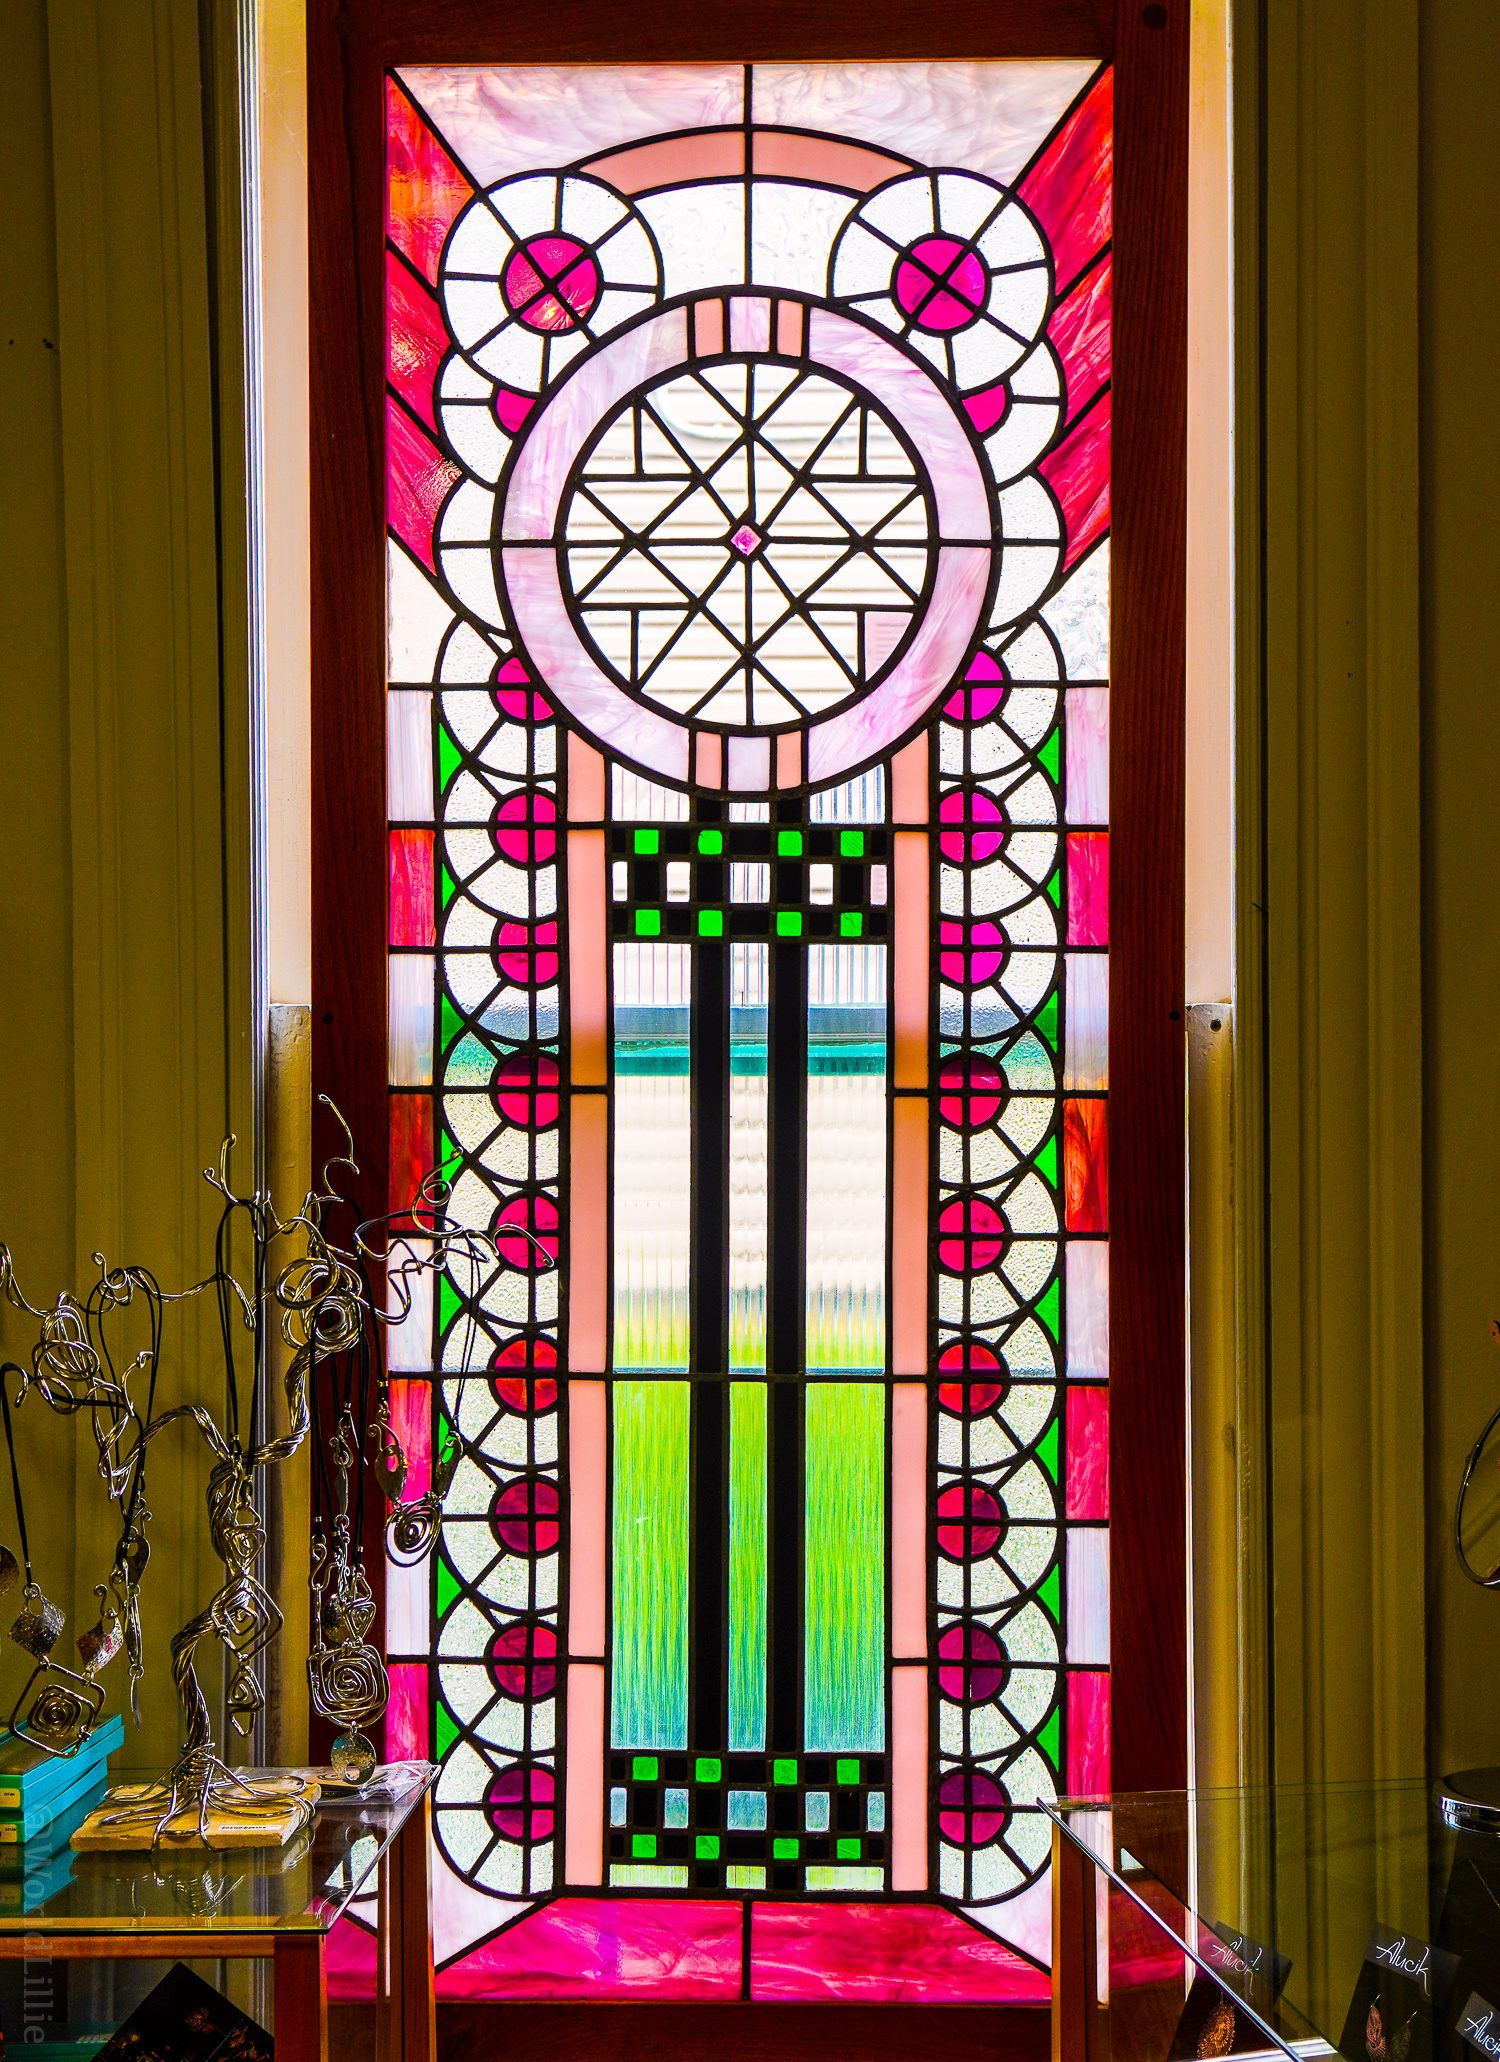 Mandy's stained glass windows are stunning.